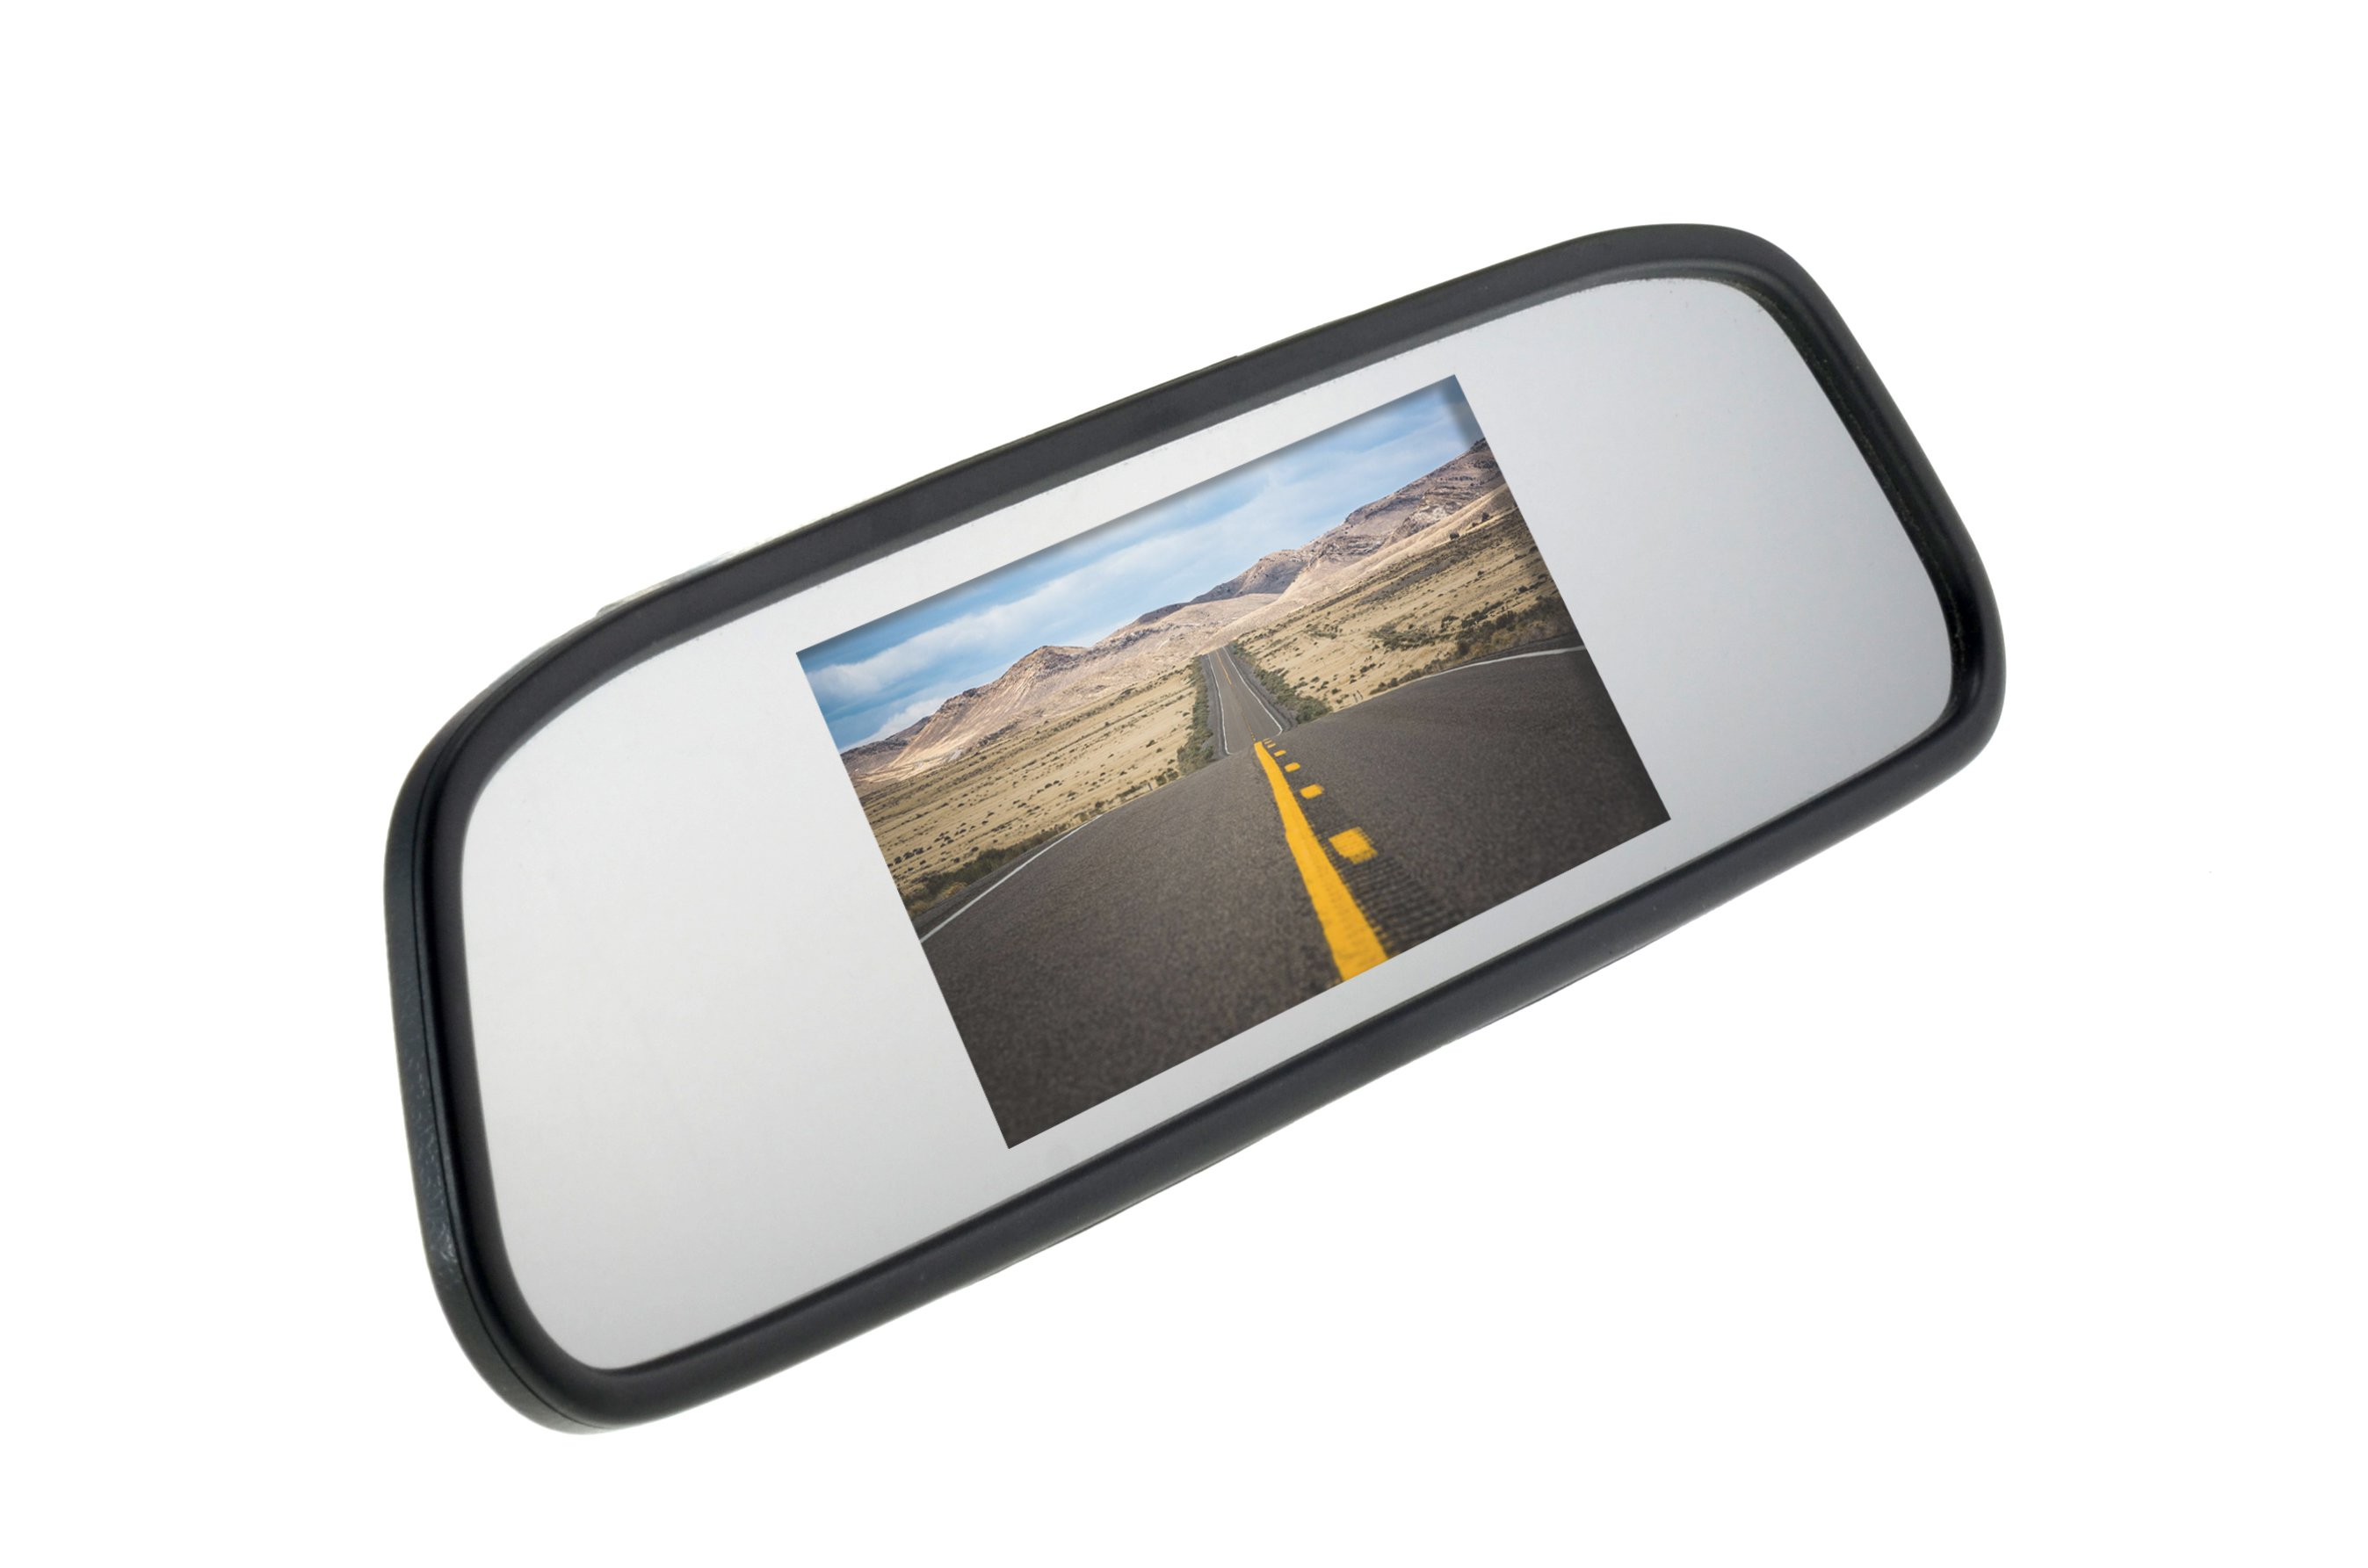 Mirror with monitor